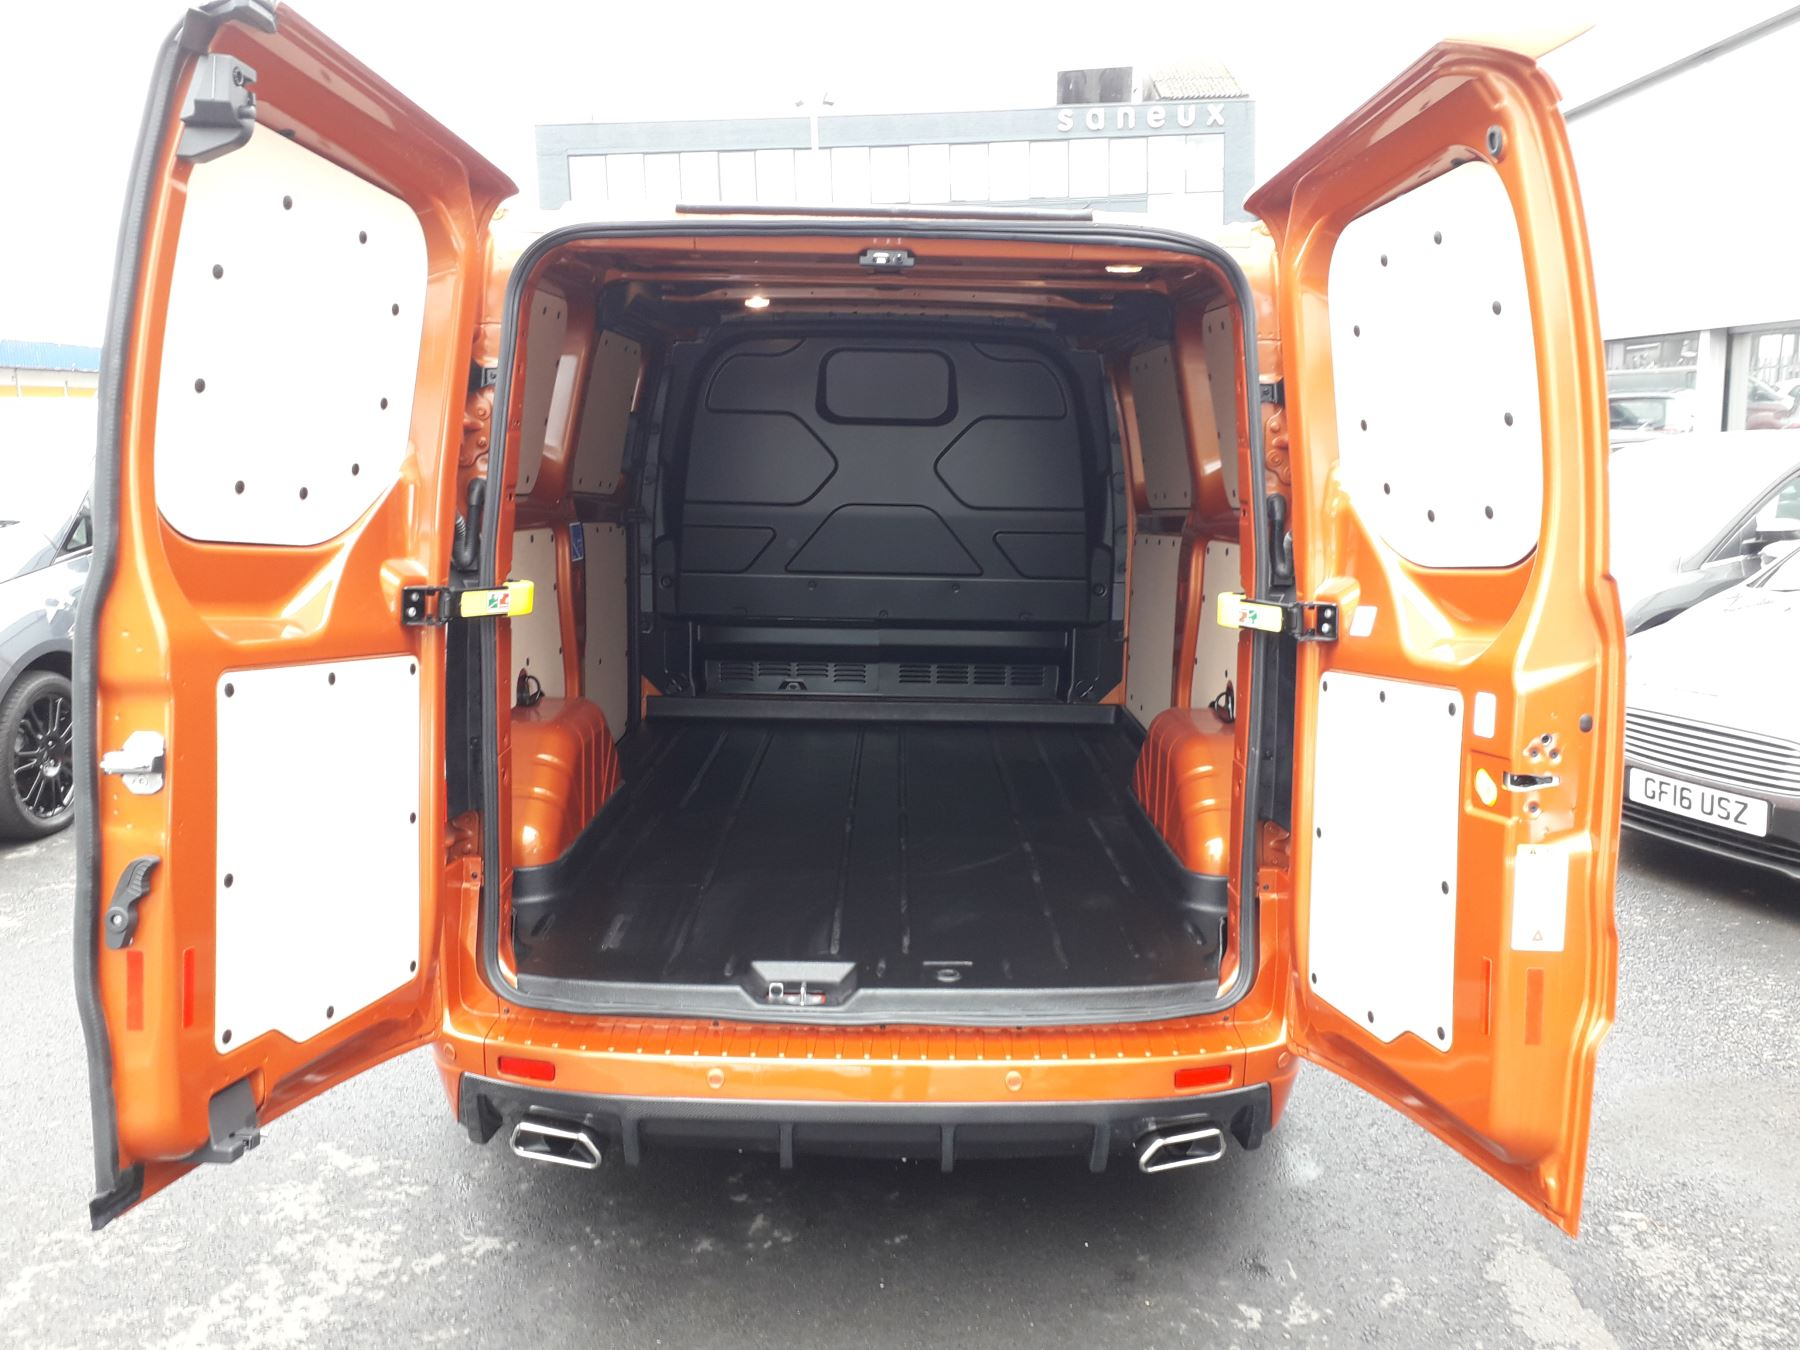 Ford Transit Custom 280 L1 Motion R 130PS Euro 6 image 22